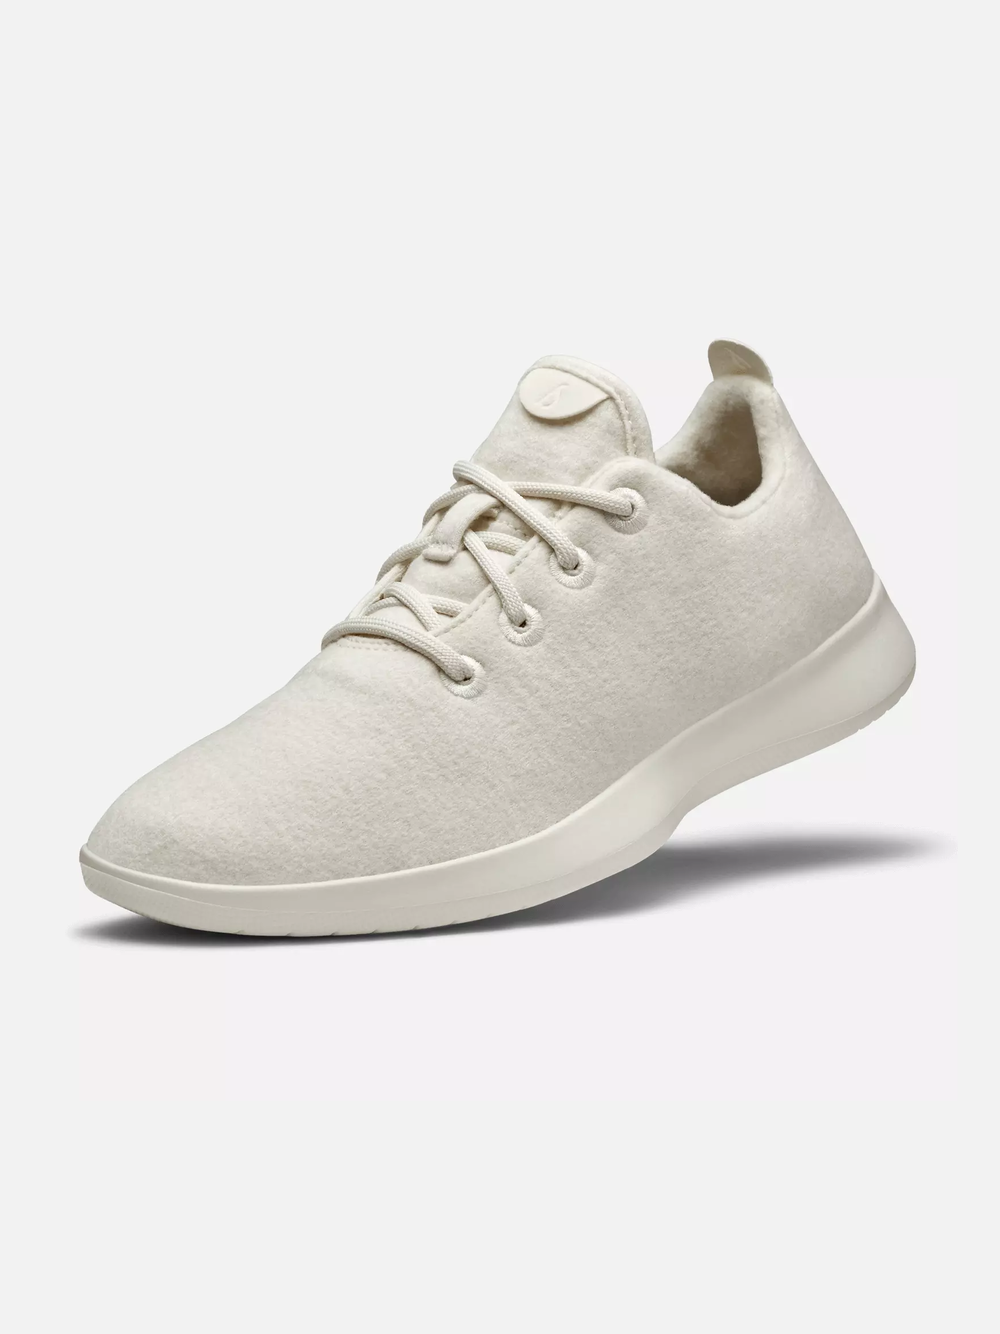 Allbirds, $95 -